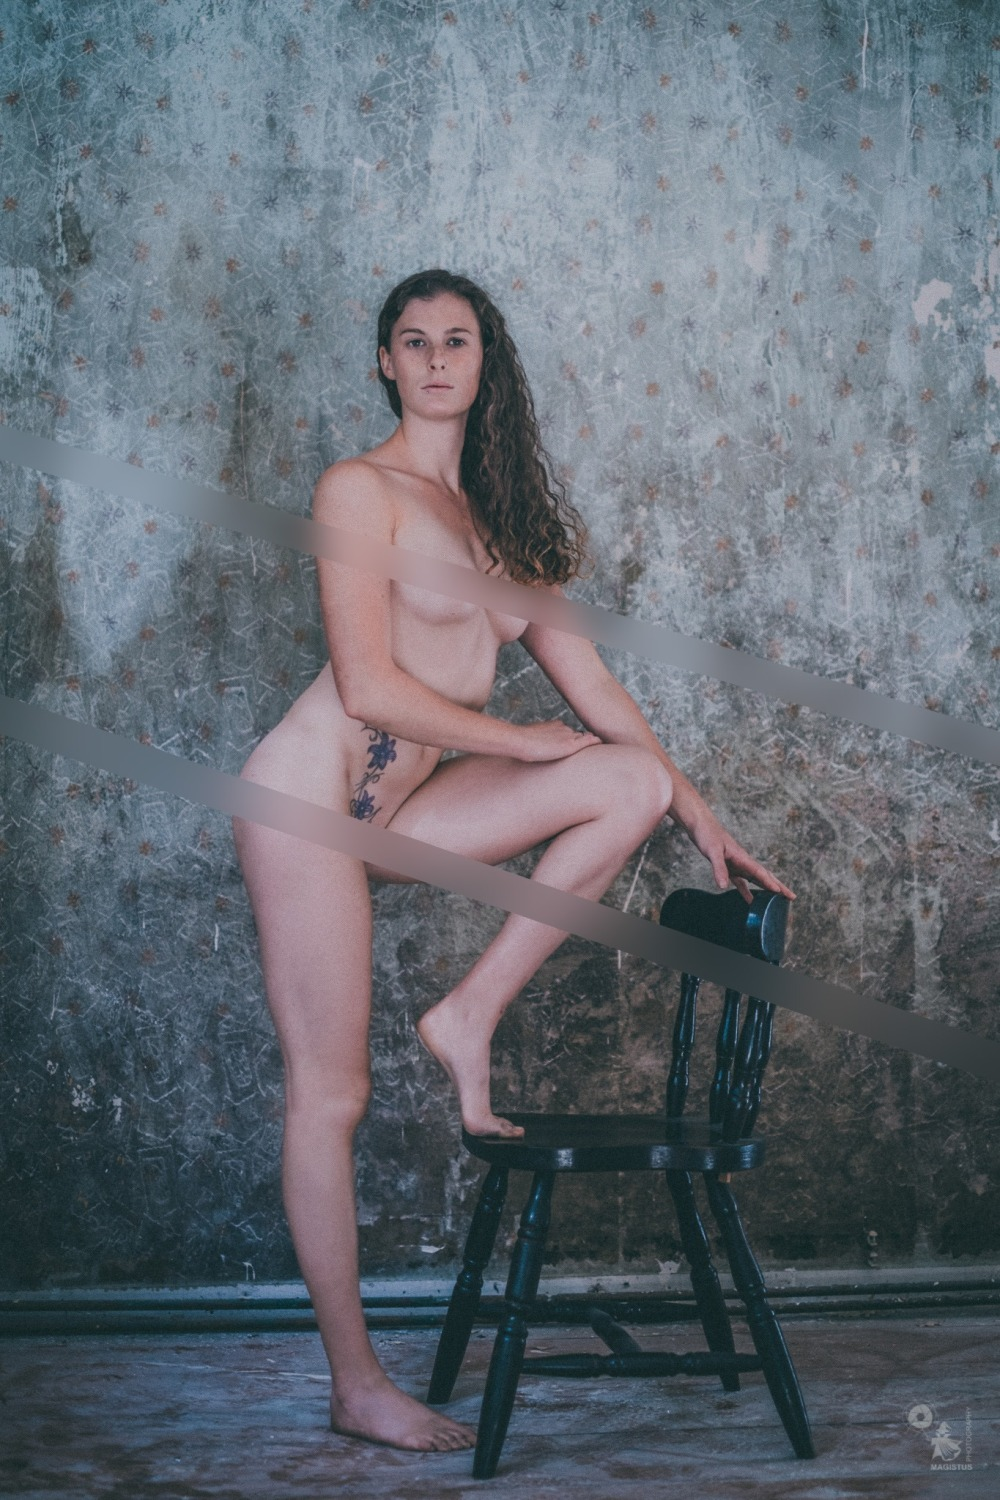 Nude art photo of a fantastic model posing naked